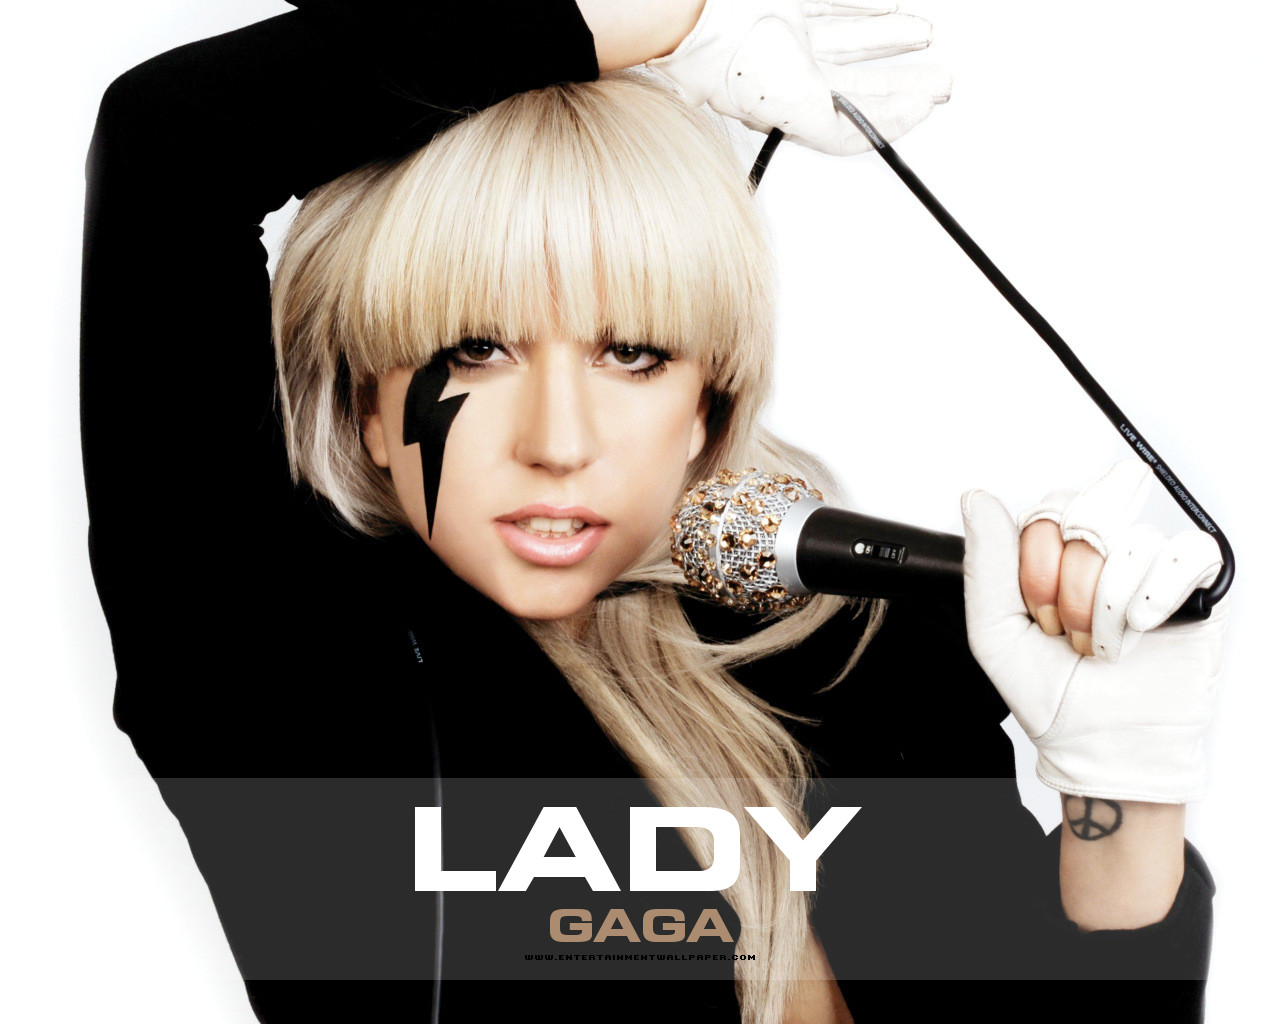 lady_gaga_music_microphone_wallpapers_2011_53465